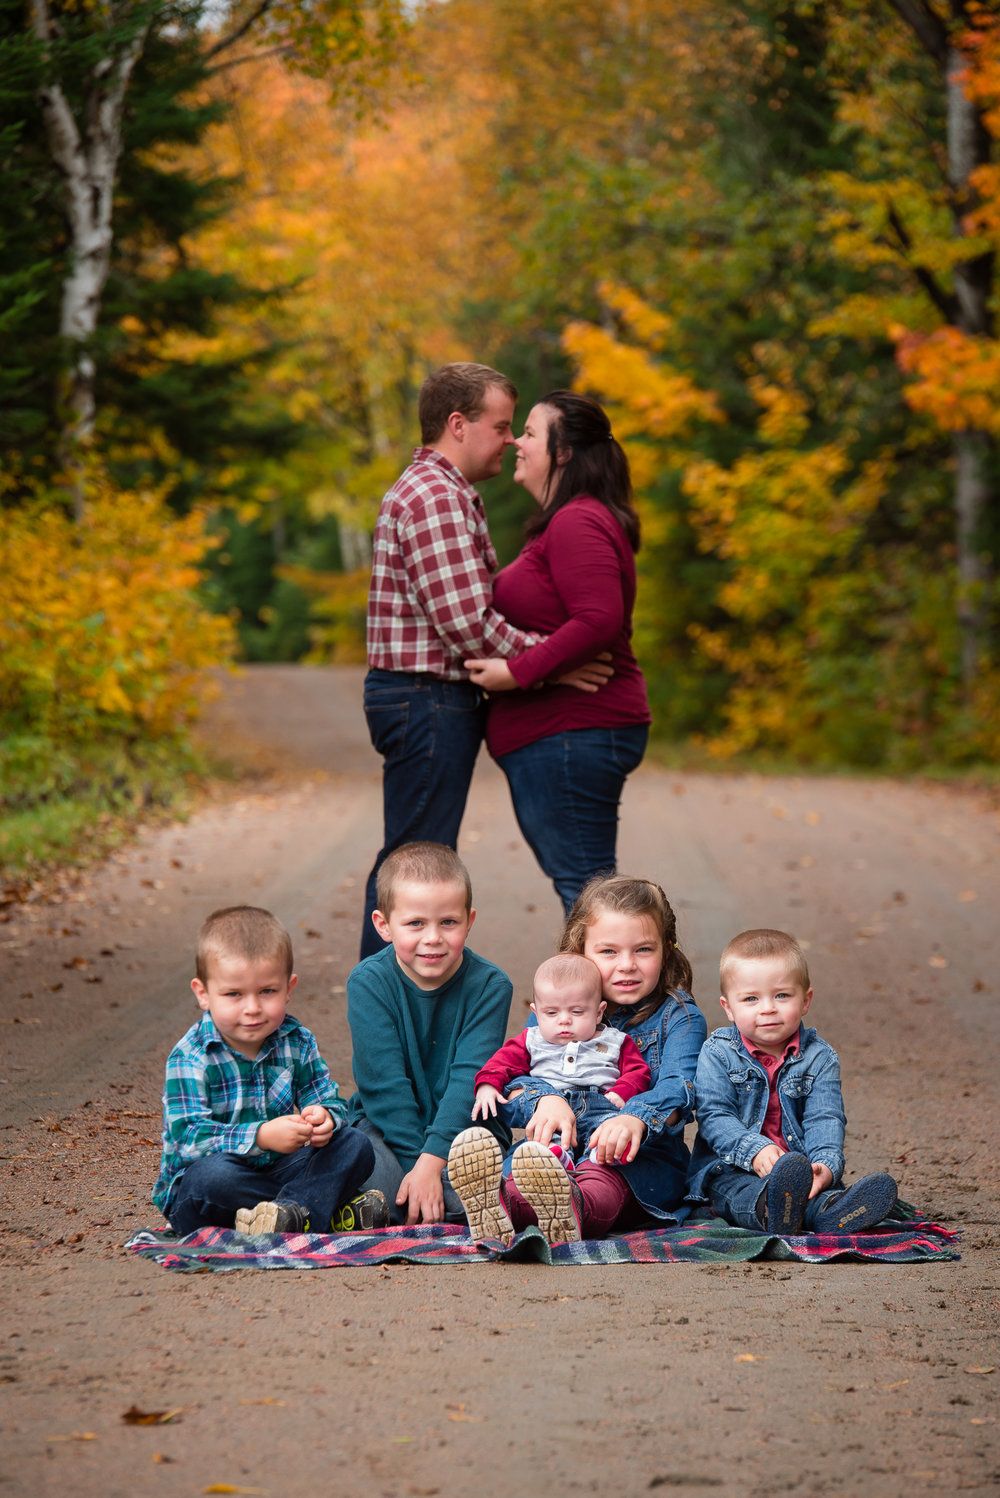 Naomi Lucienne Photography - Extended Family - 171009252.jpg